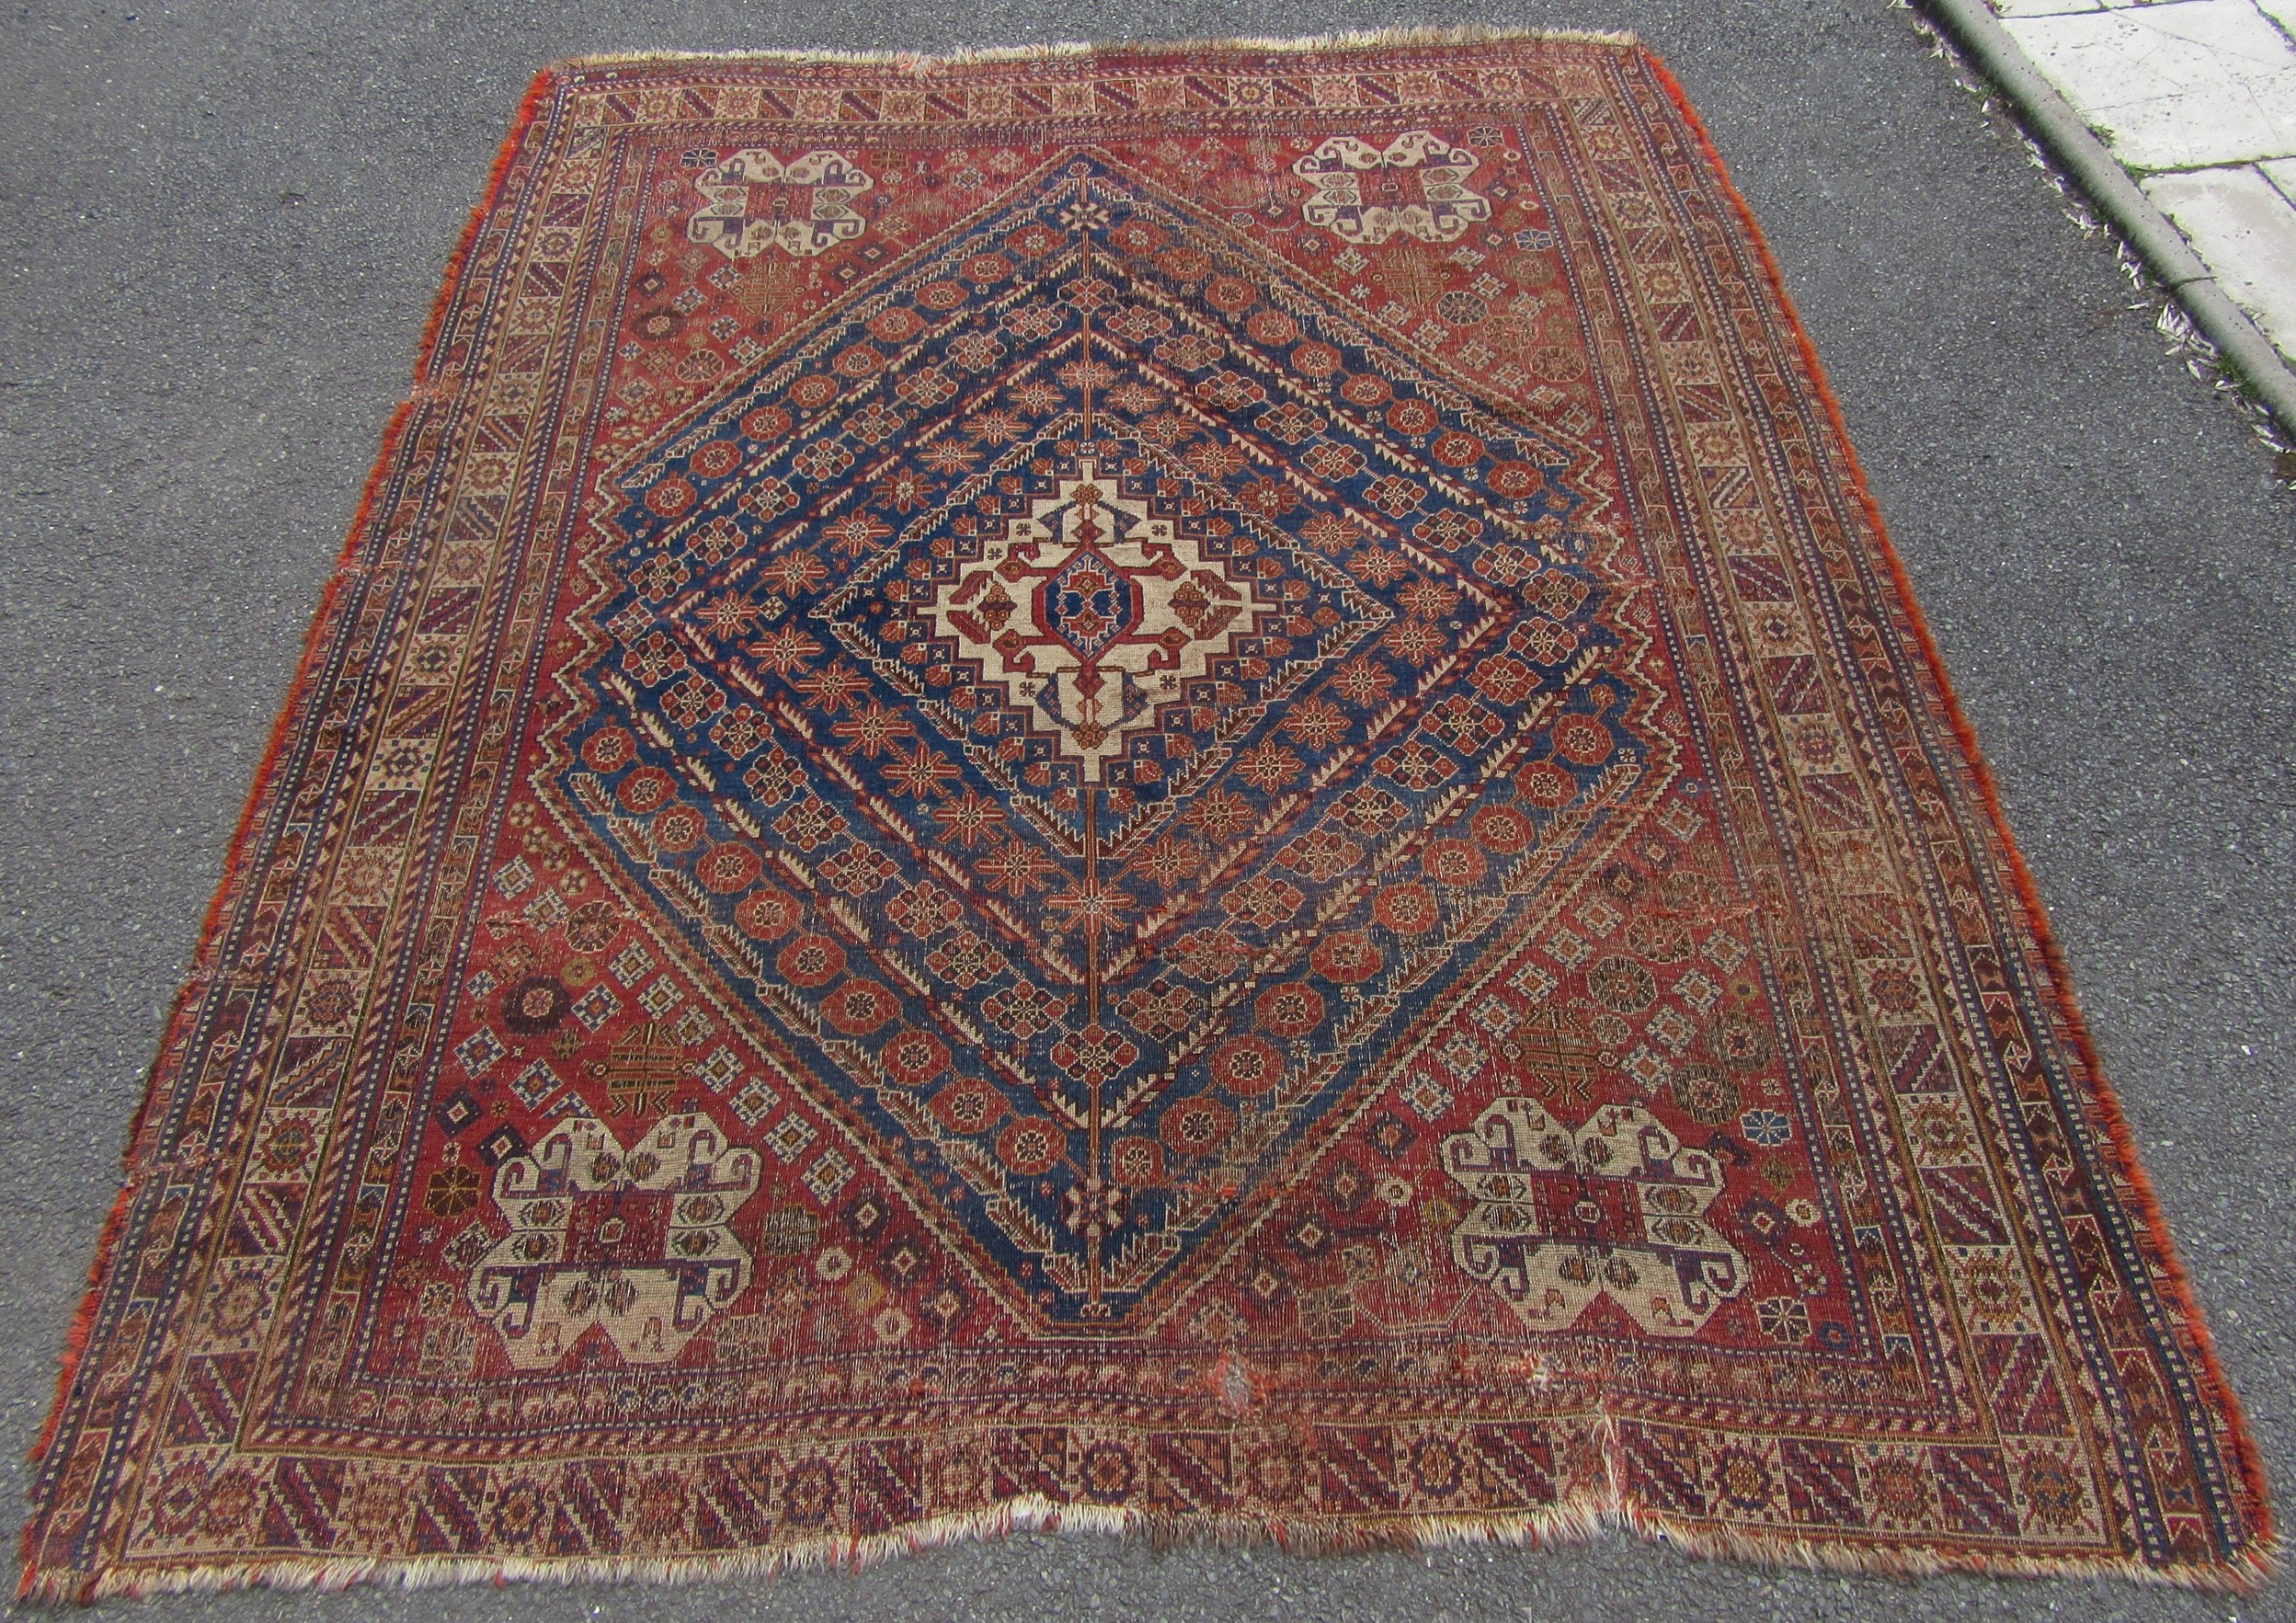 Charming Antique Country House Shabby Chic Persian Q Ashqai Tribal Rug 629894 Sellingantiques Co Uk